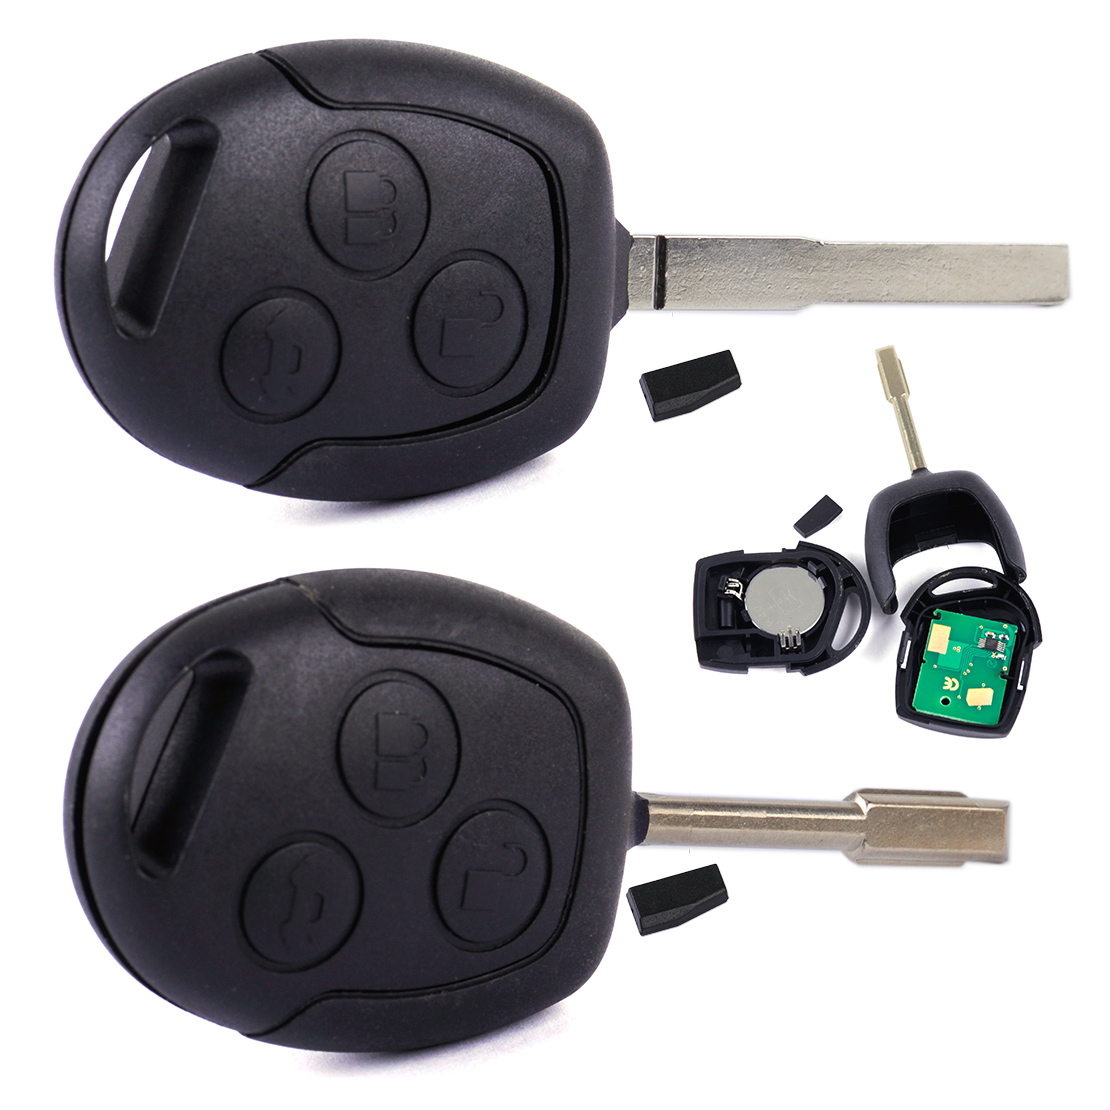 DWCX New Black Car Remote Key 3 Button Entry Key 433MHZ Replacement Fit For Ford Mondeo Fiesta Focus KA 2002